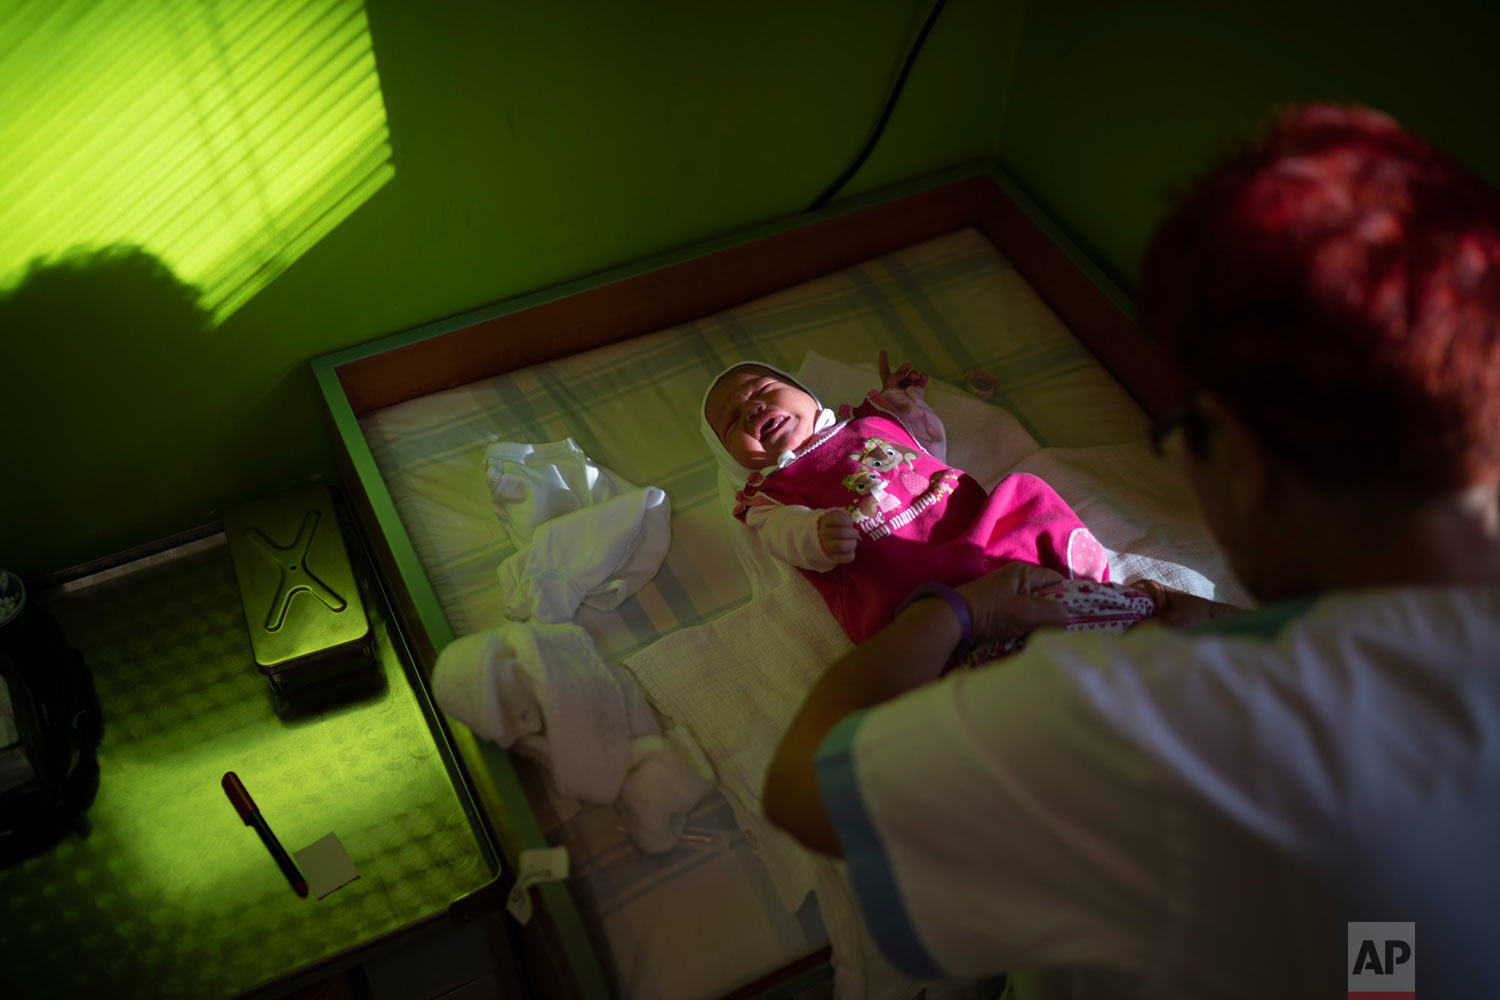 A nurse dresses a baby at the Kezmarok hospital on Nov. 16. 2018, in Kezmarok, Slovakia. (AP Photo/Felipe Dana)